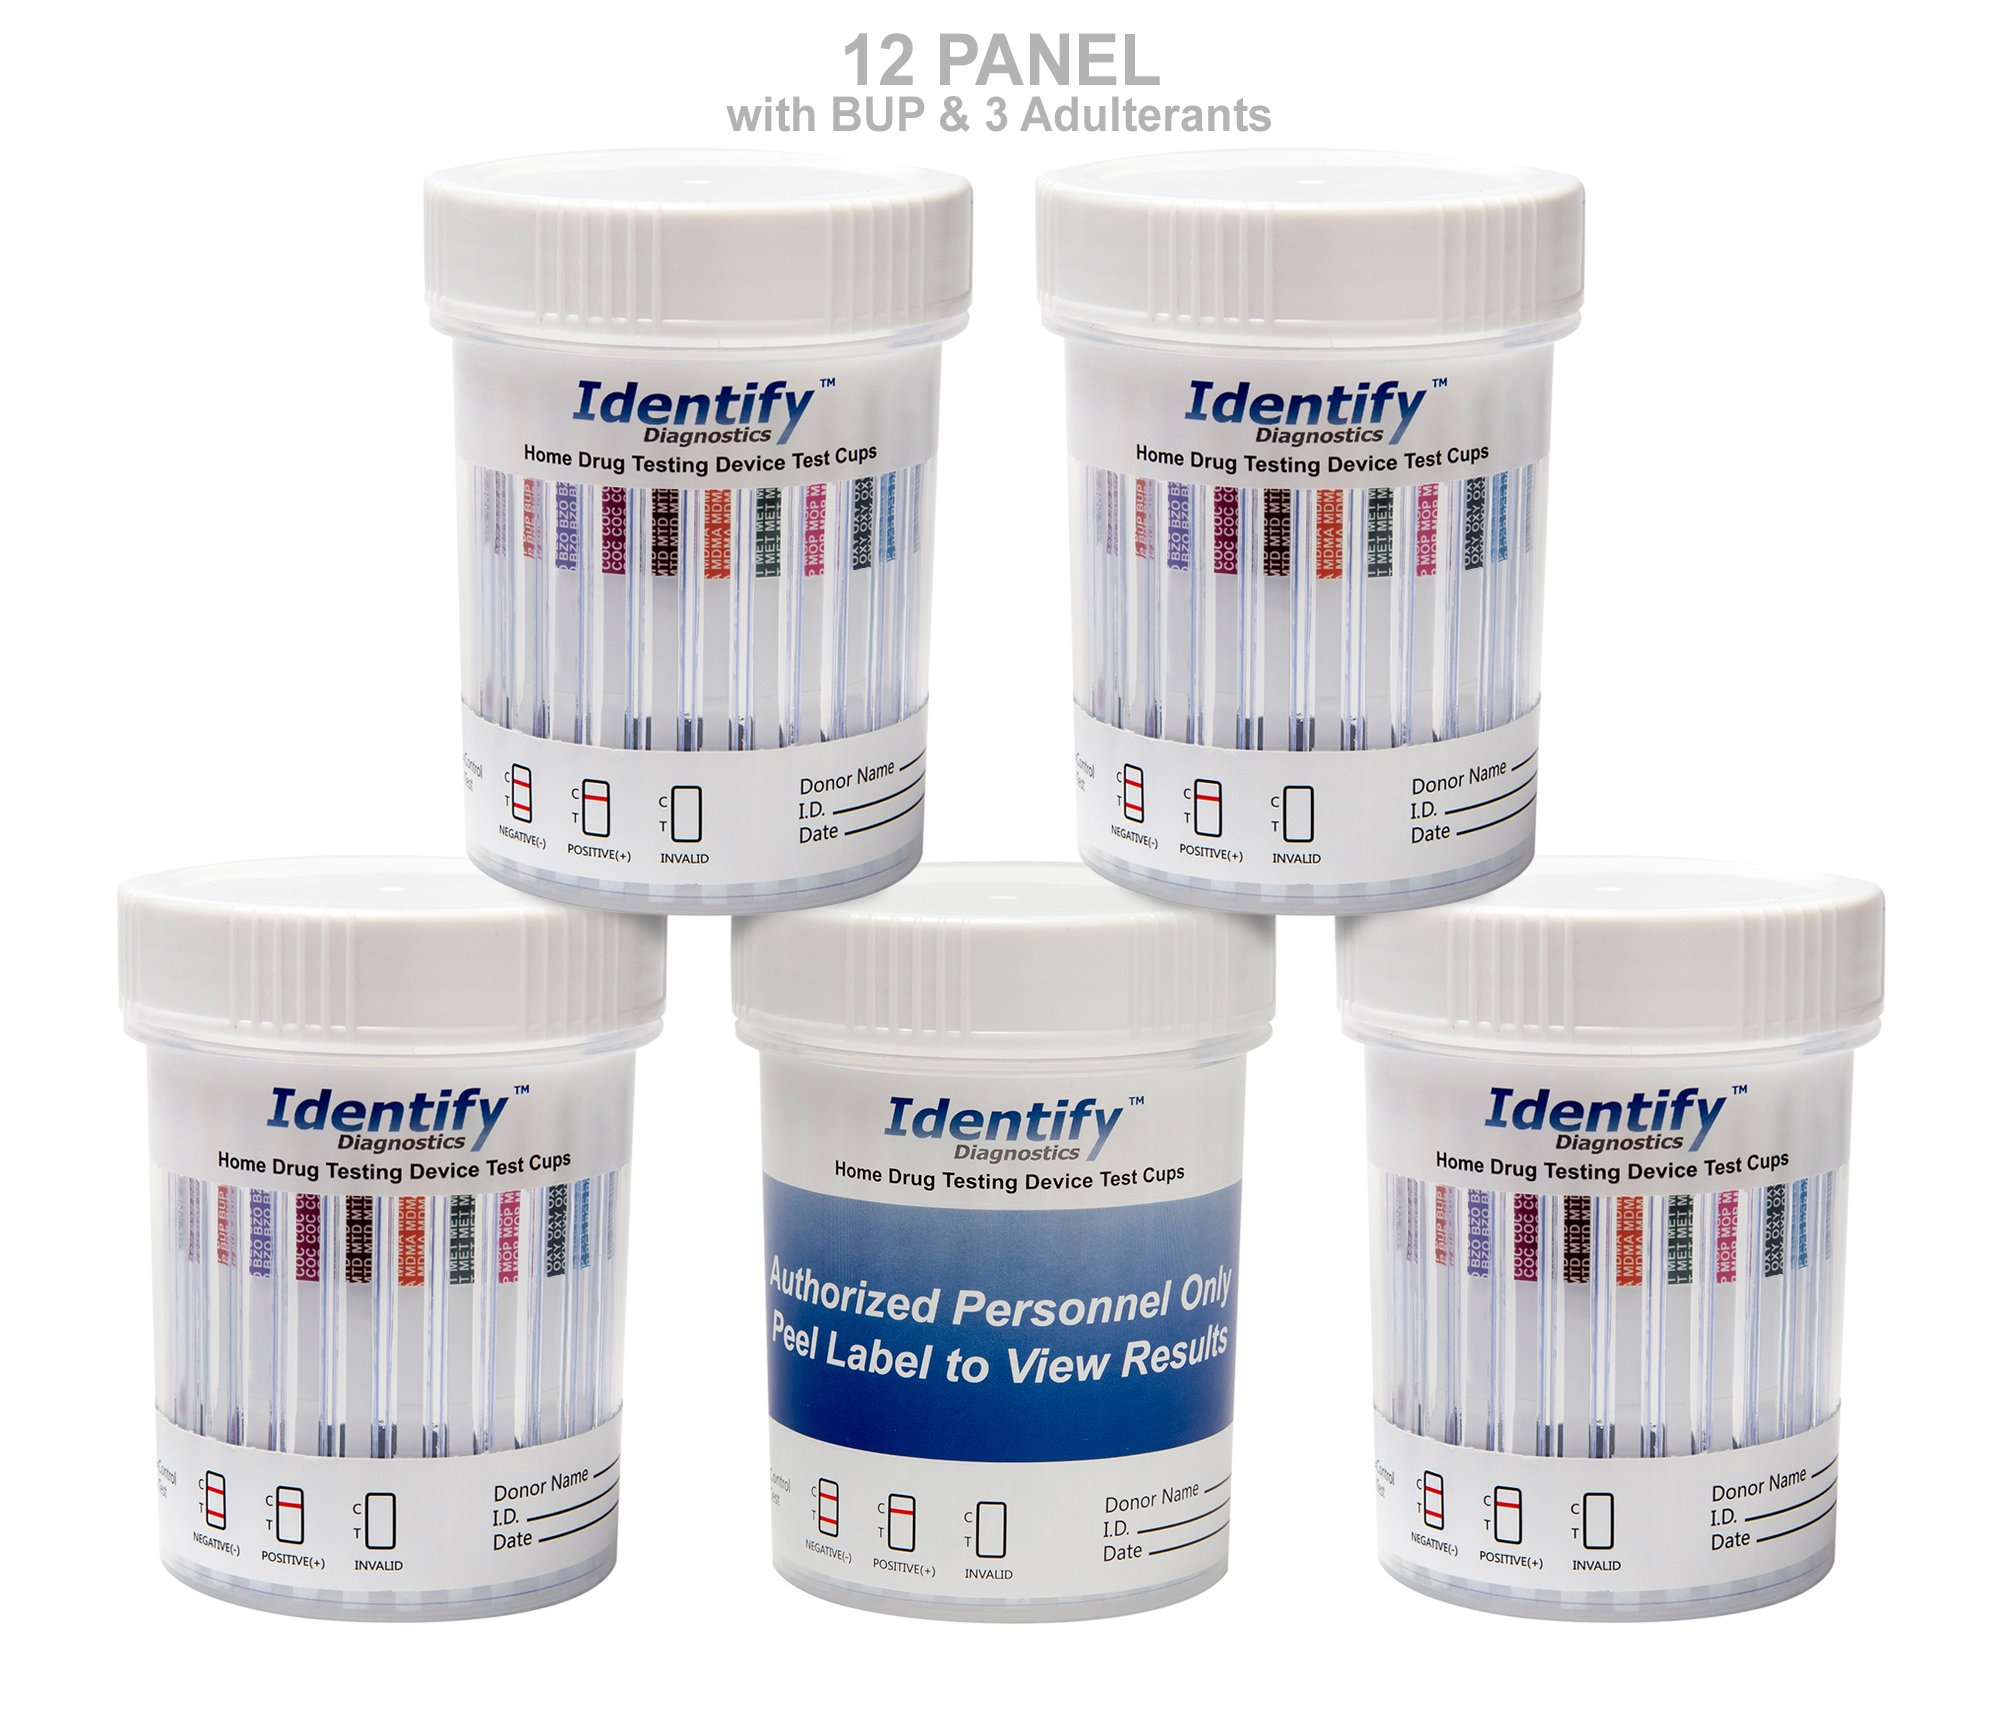 25 Pack Identify Diagnostics 12 Panel Drug Test Cup with 3 Adulterants PH, SG, CR - Testing Instantly for 12 Drugs: THC, COC, OXY, MDMA, BUP, MOP, AMP, BAR, BZO, MET, MTD, PCP #ID-CP12-BUP-ADULT